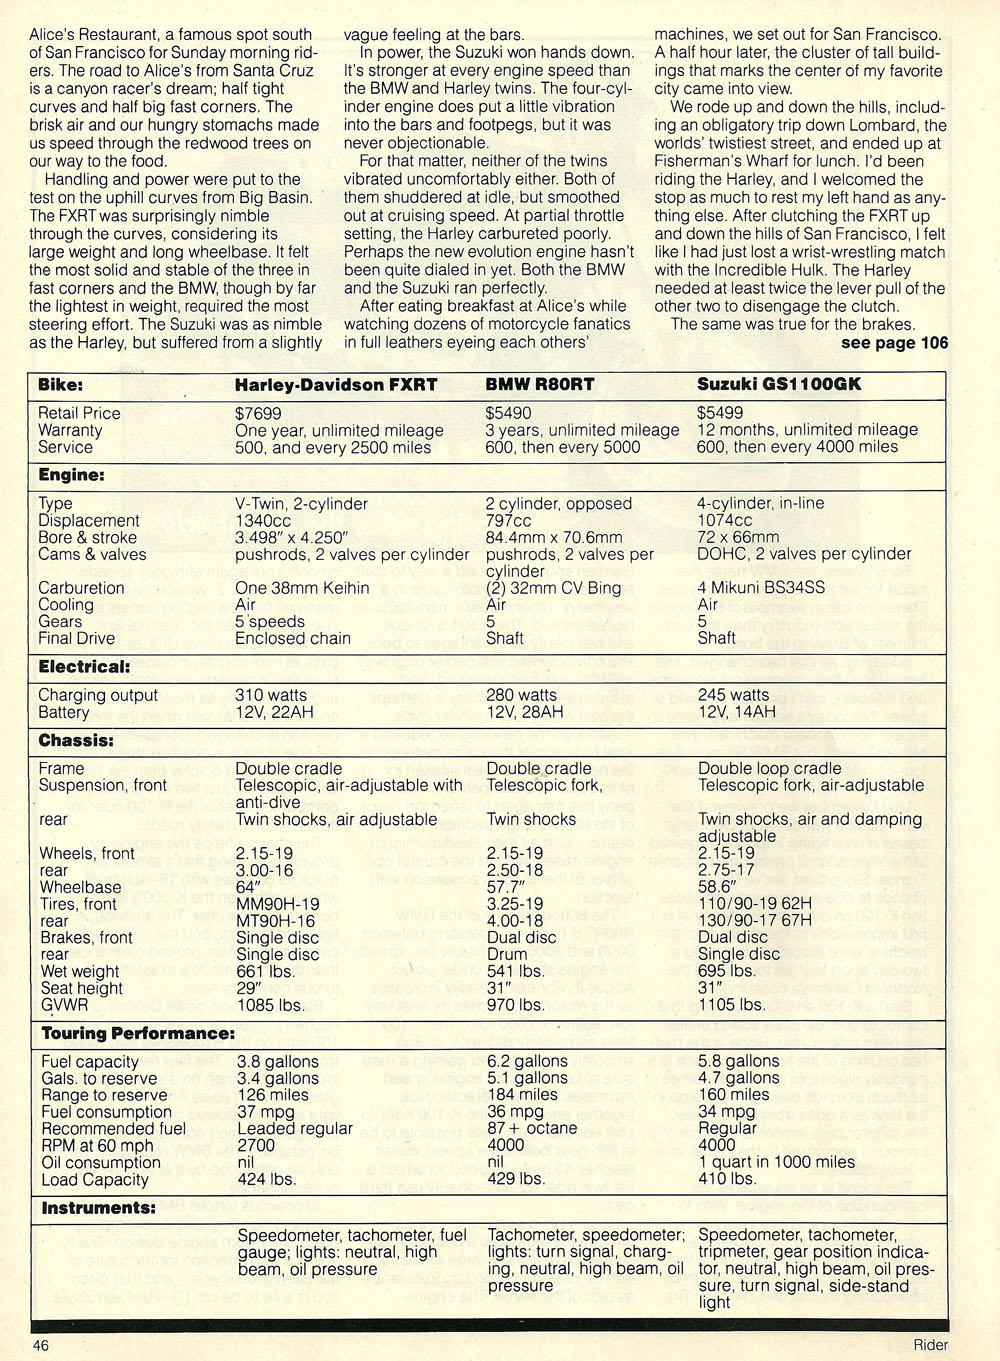 1984 bmw r80rt vs harley fxrt vs suzuki gs1100 road test 05.jpg